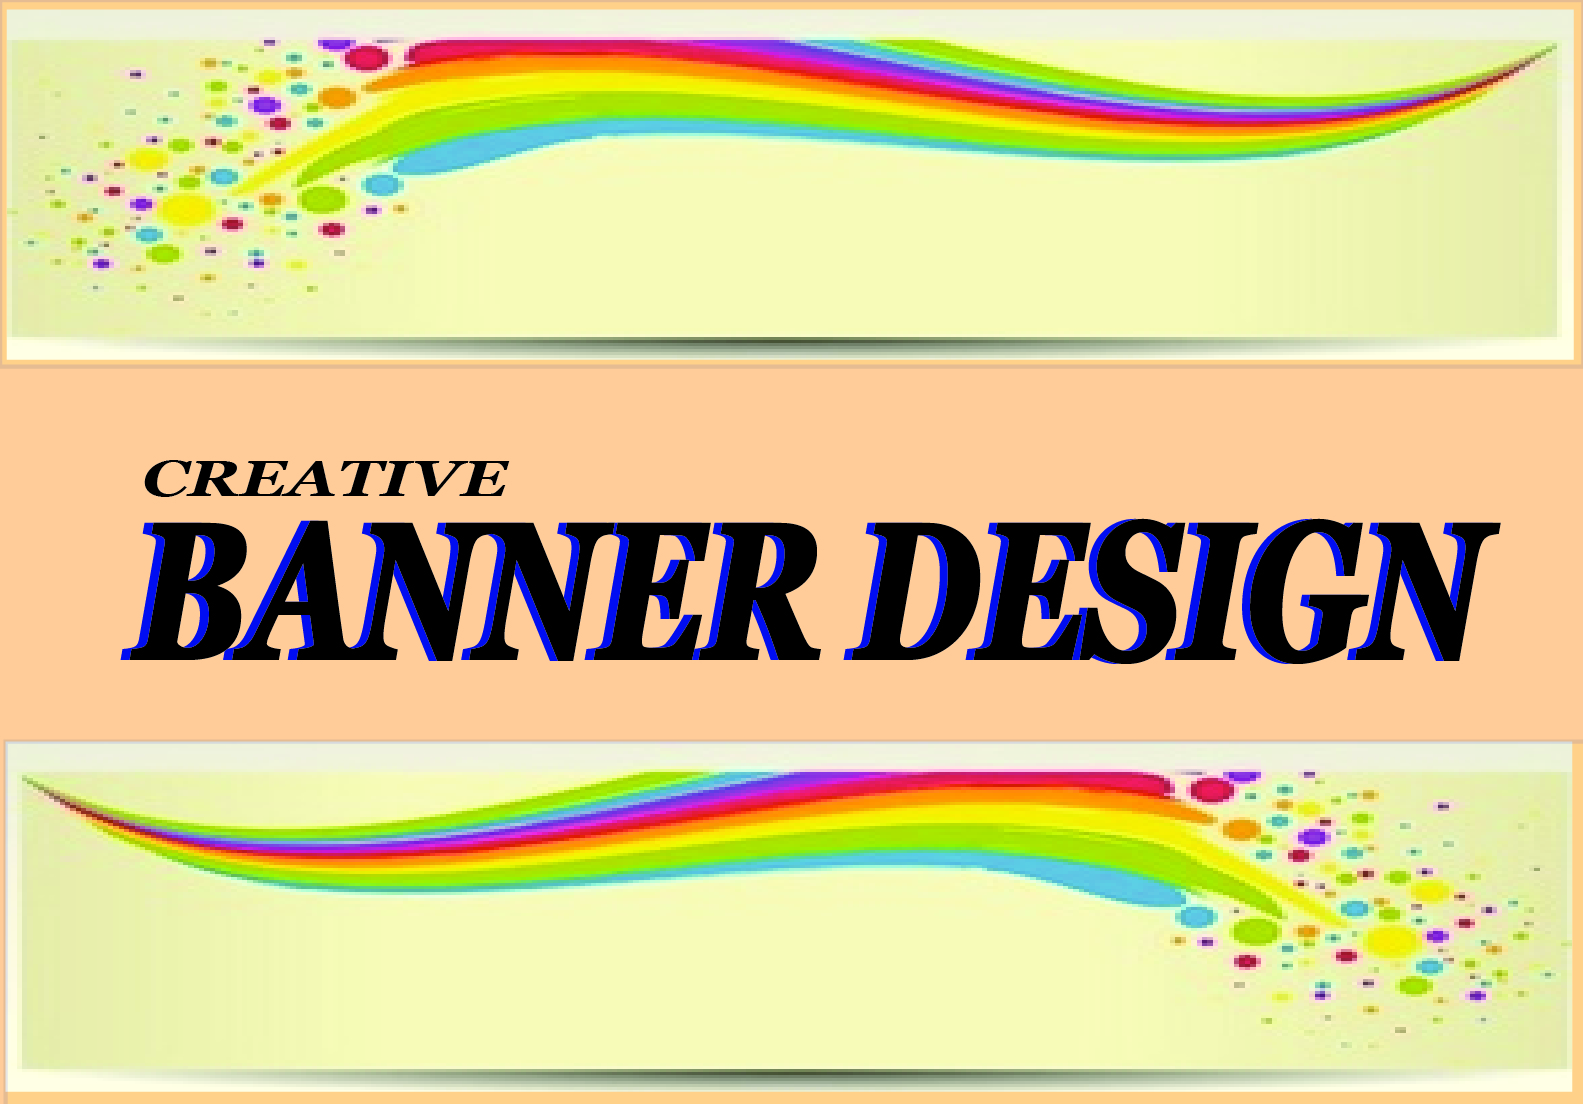 I Will Design Creative Banner For You